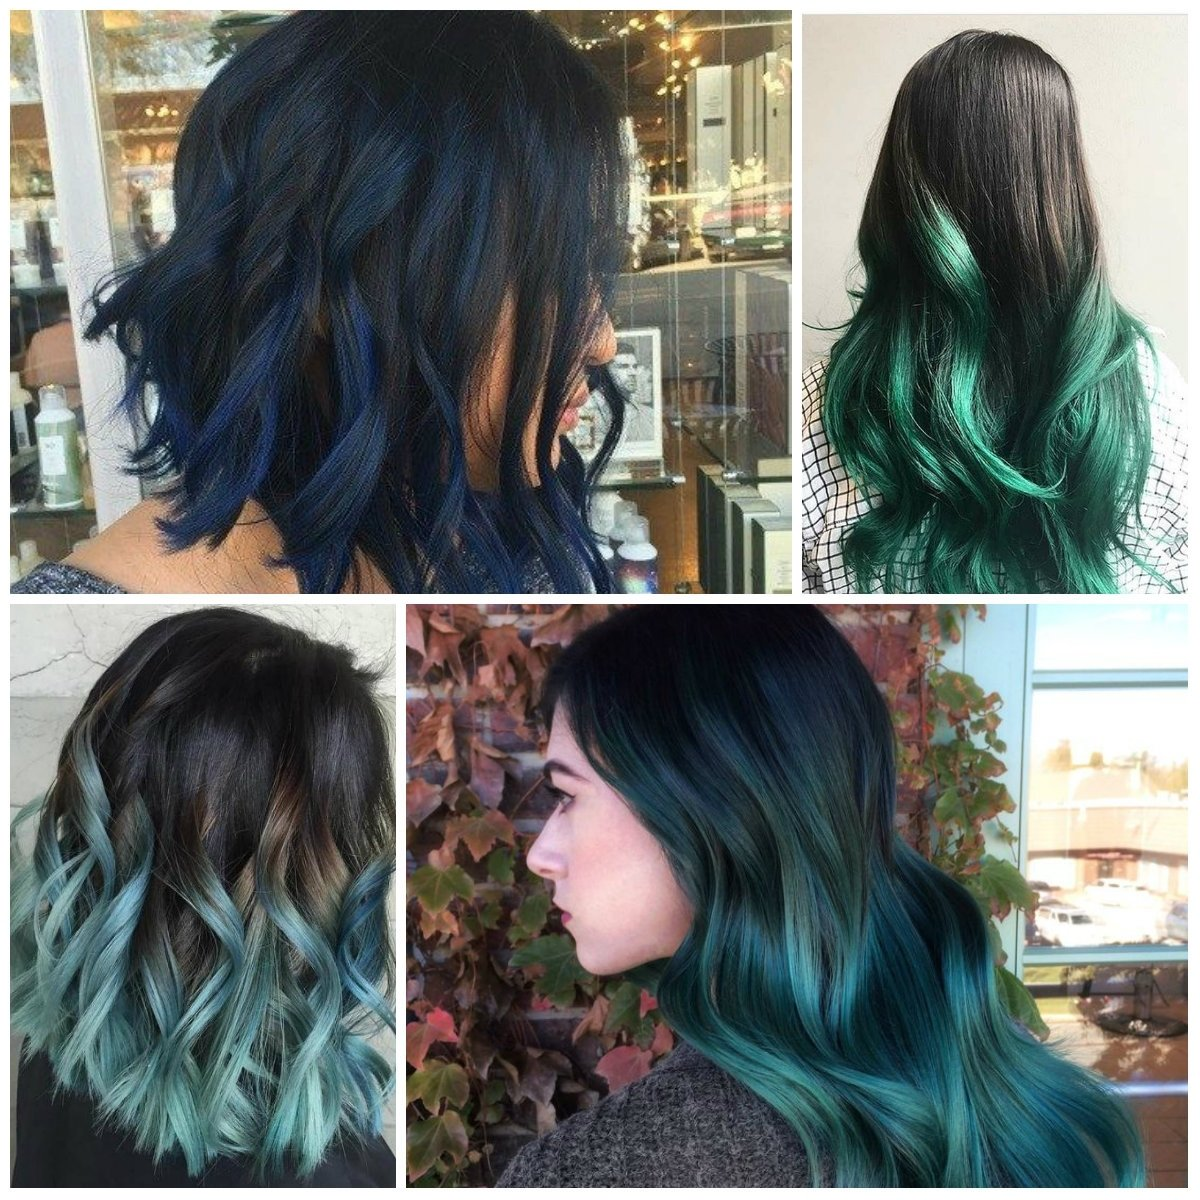 10 Awesome Hair Dye Ideas For Black Hair ombre best hair color ideas trends in 2017 2018 2021